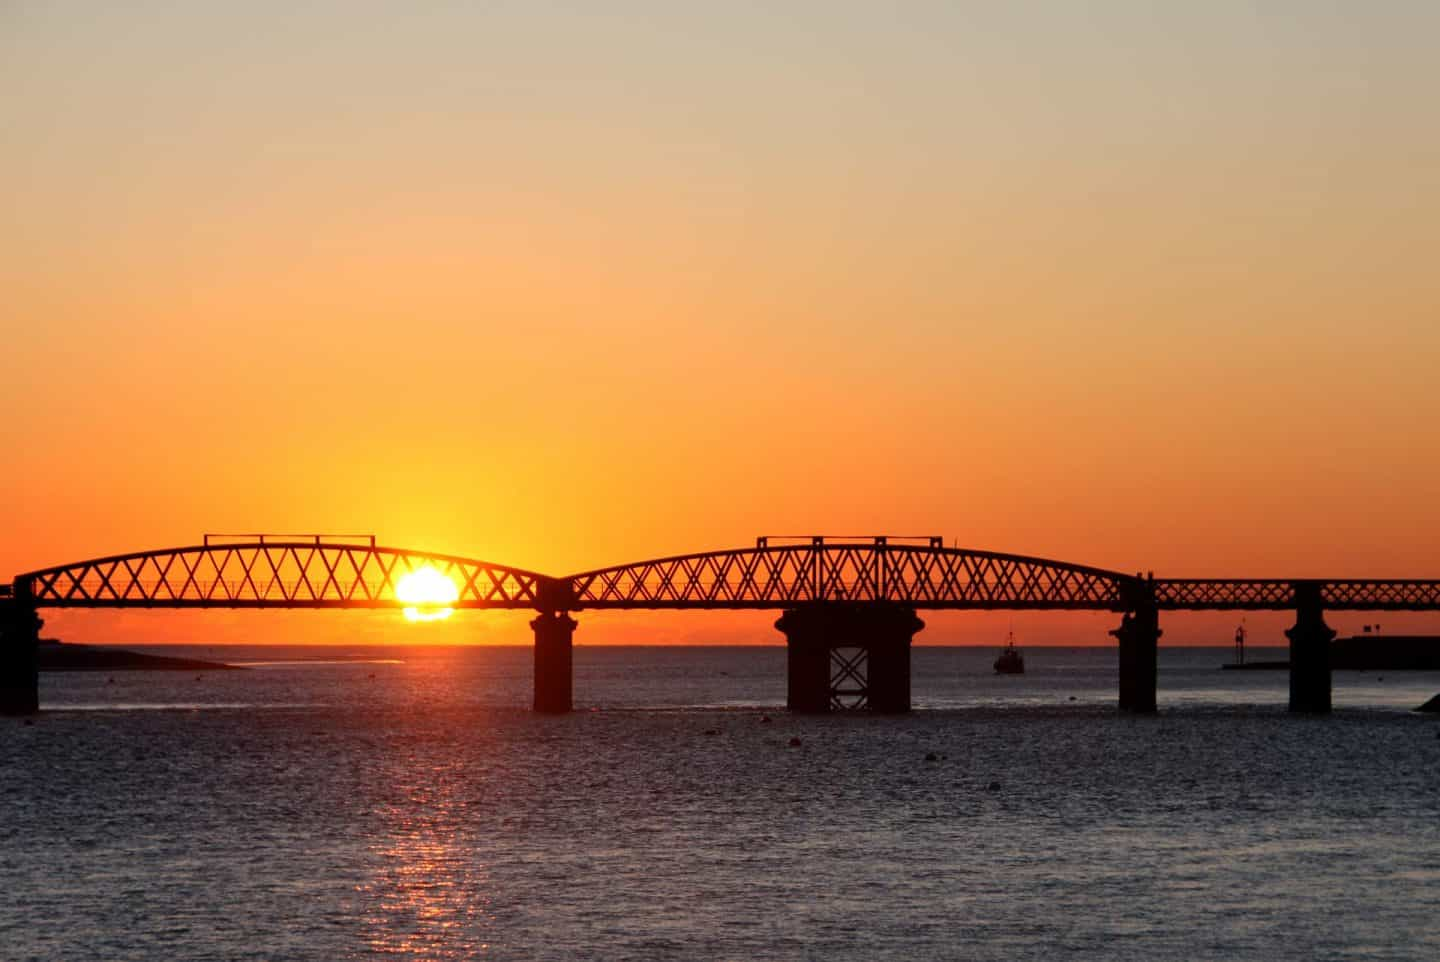 Image of Barmouth Bridge at sunset